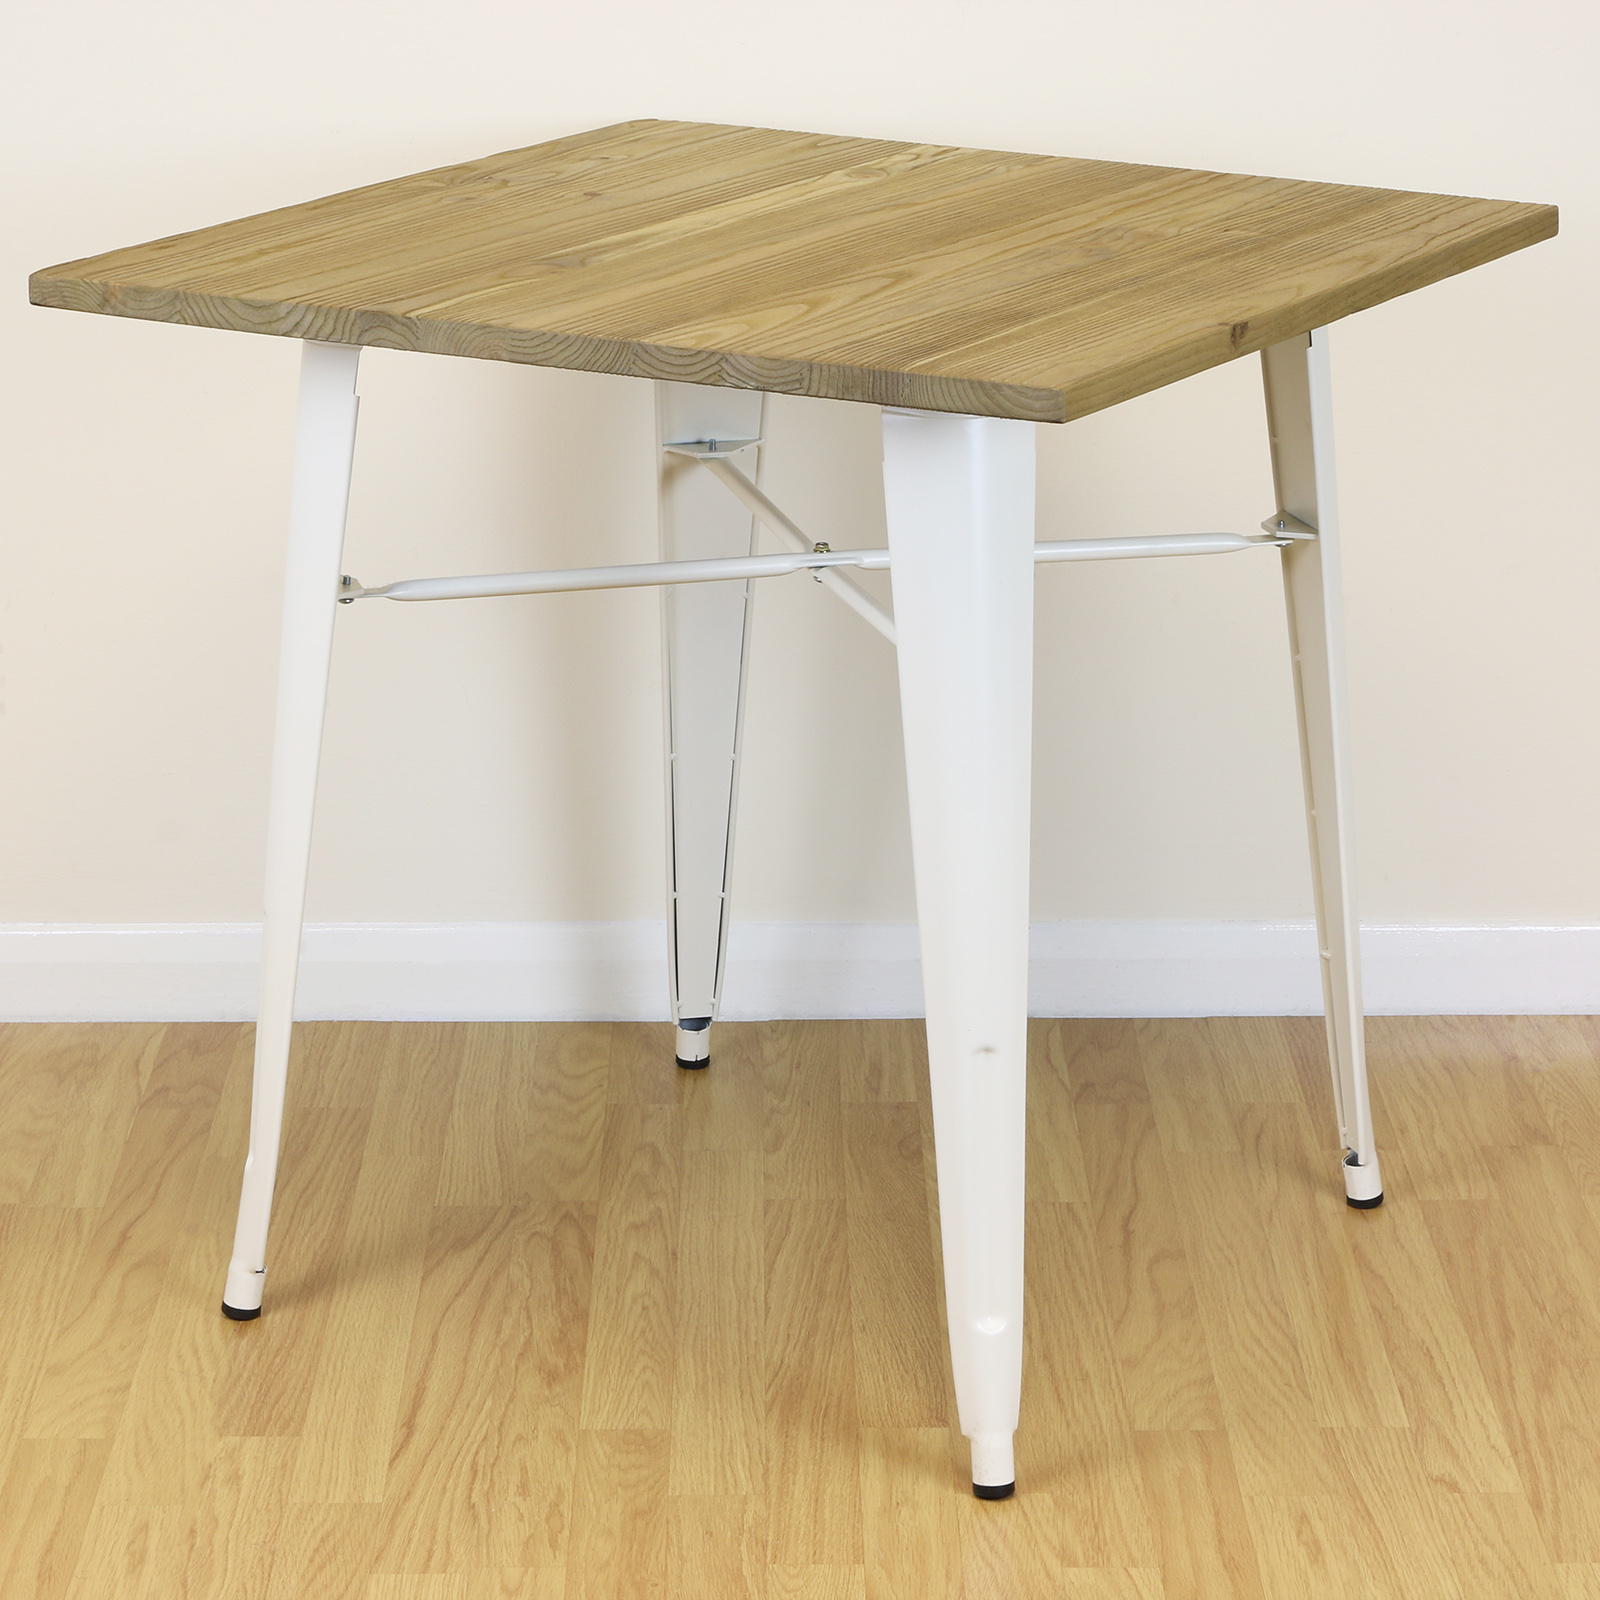 Square Wood & Cream Kitchen/Dining/Cafe Home Table 2/4